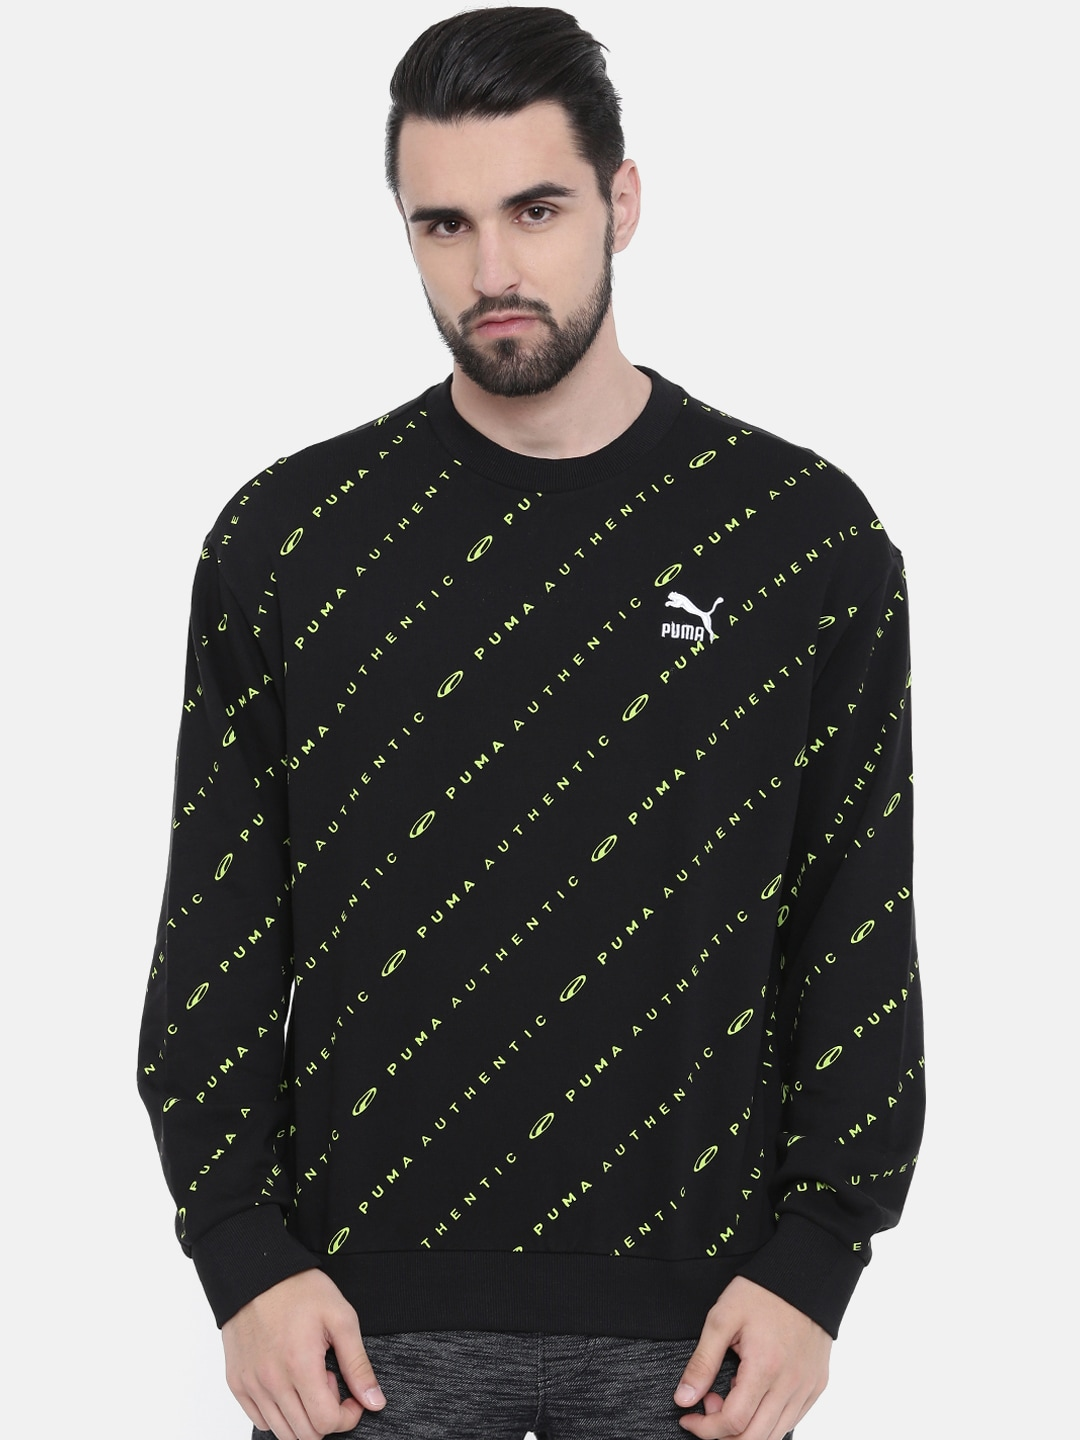 91fa16f1782 Sweatshirts   Hoodies - Buy Sweatshirts   Hoodies for Men   Women Online -  Myntra